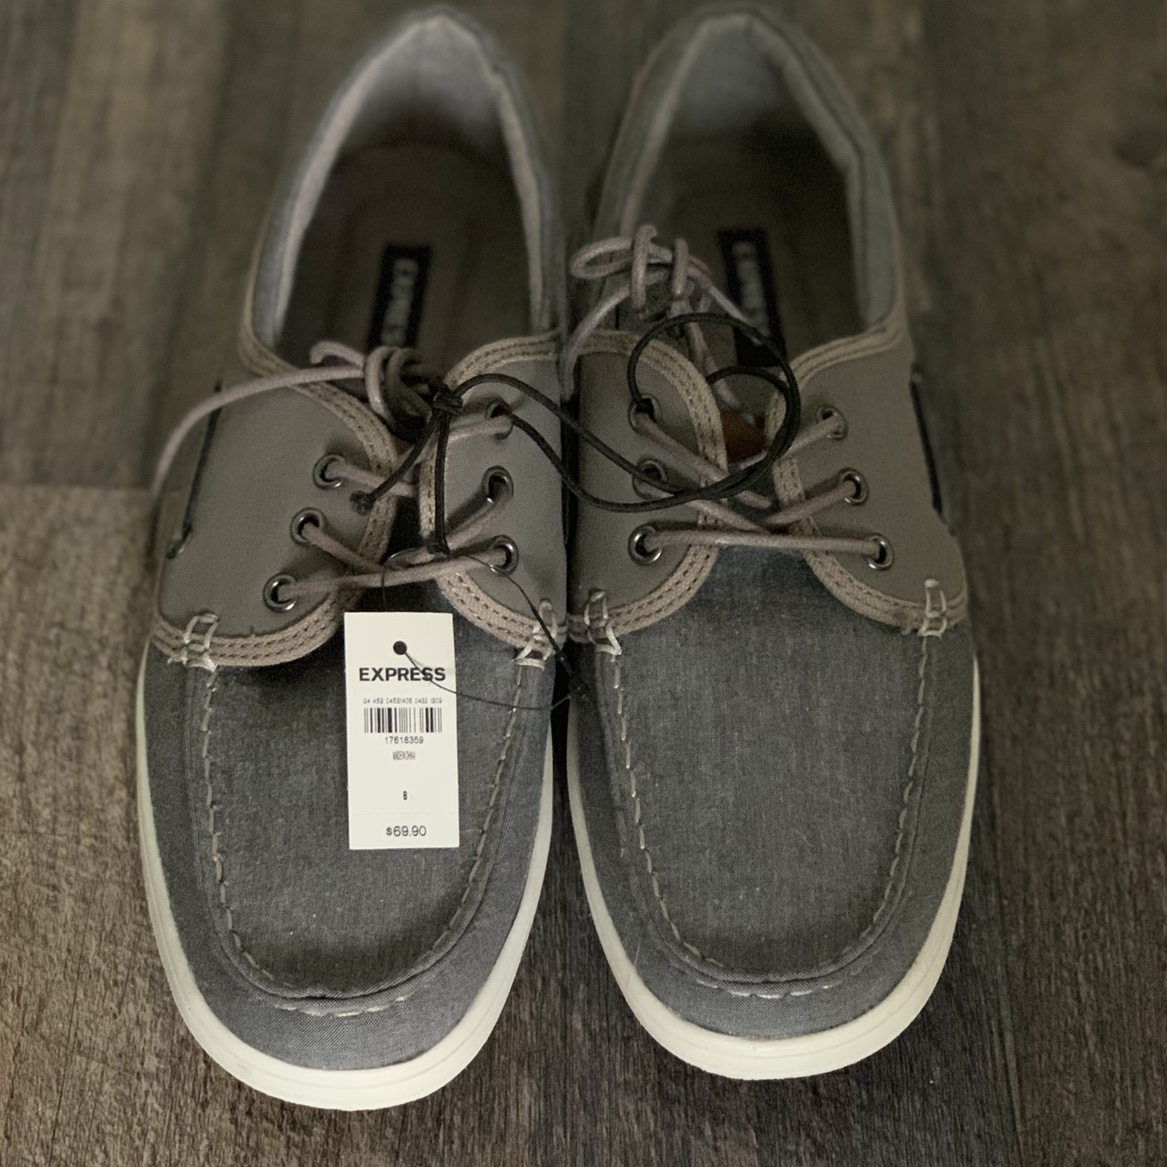 NEW] Men Express Brand Grey Boat Shoes